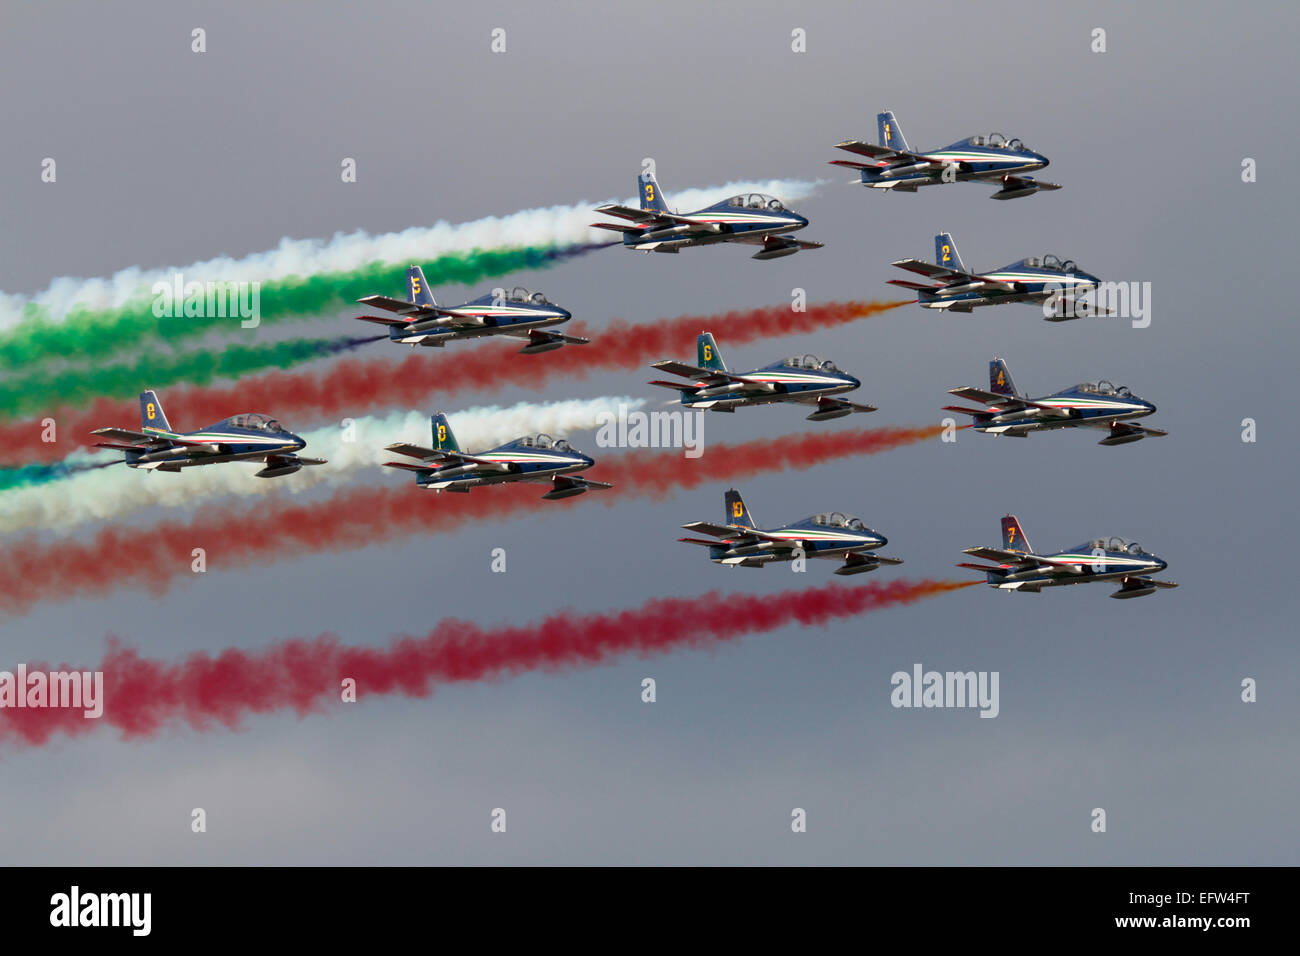 Italy's Frecce Tricolori aerobatic display team flying in formation and making smoke during an airshow display - Stock Image